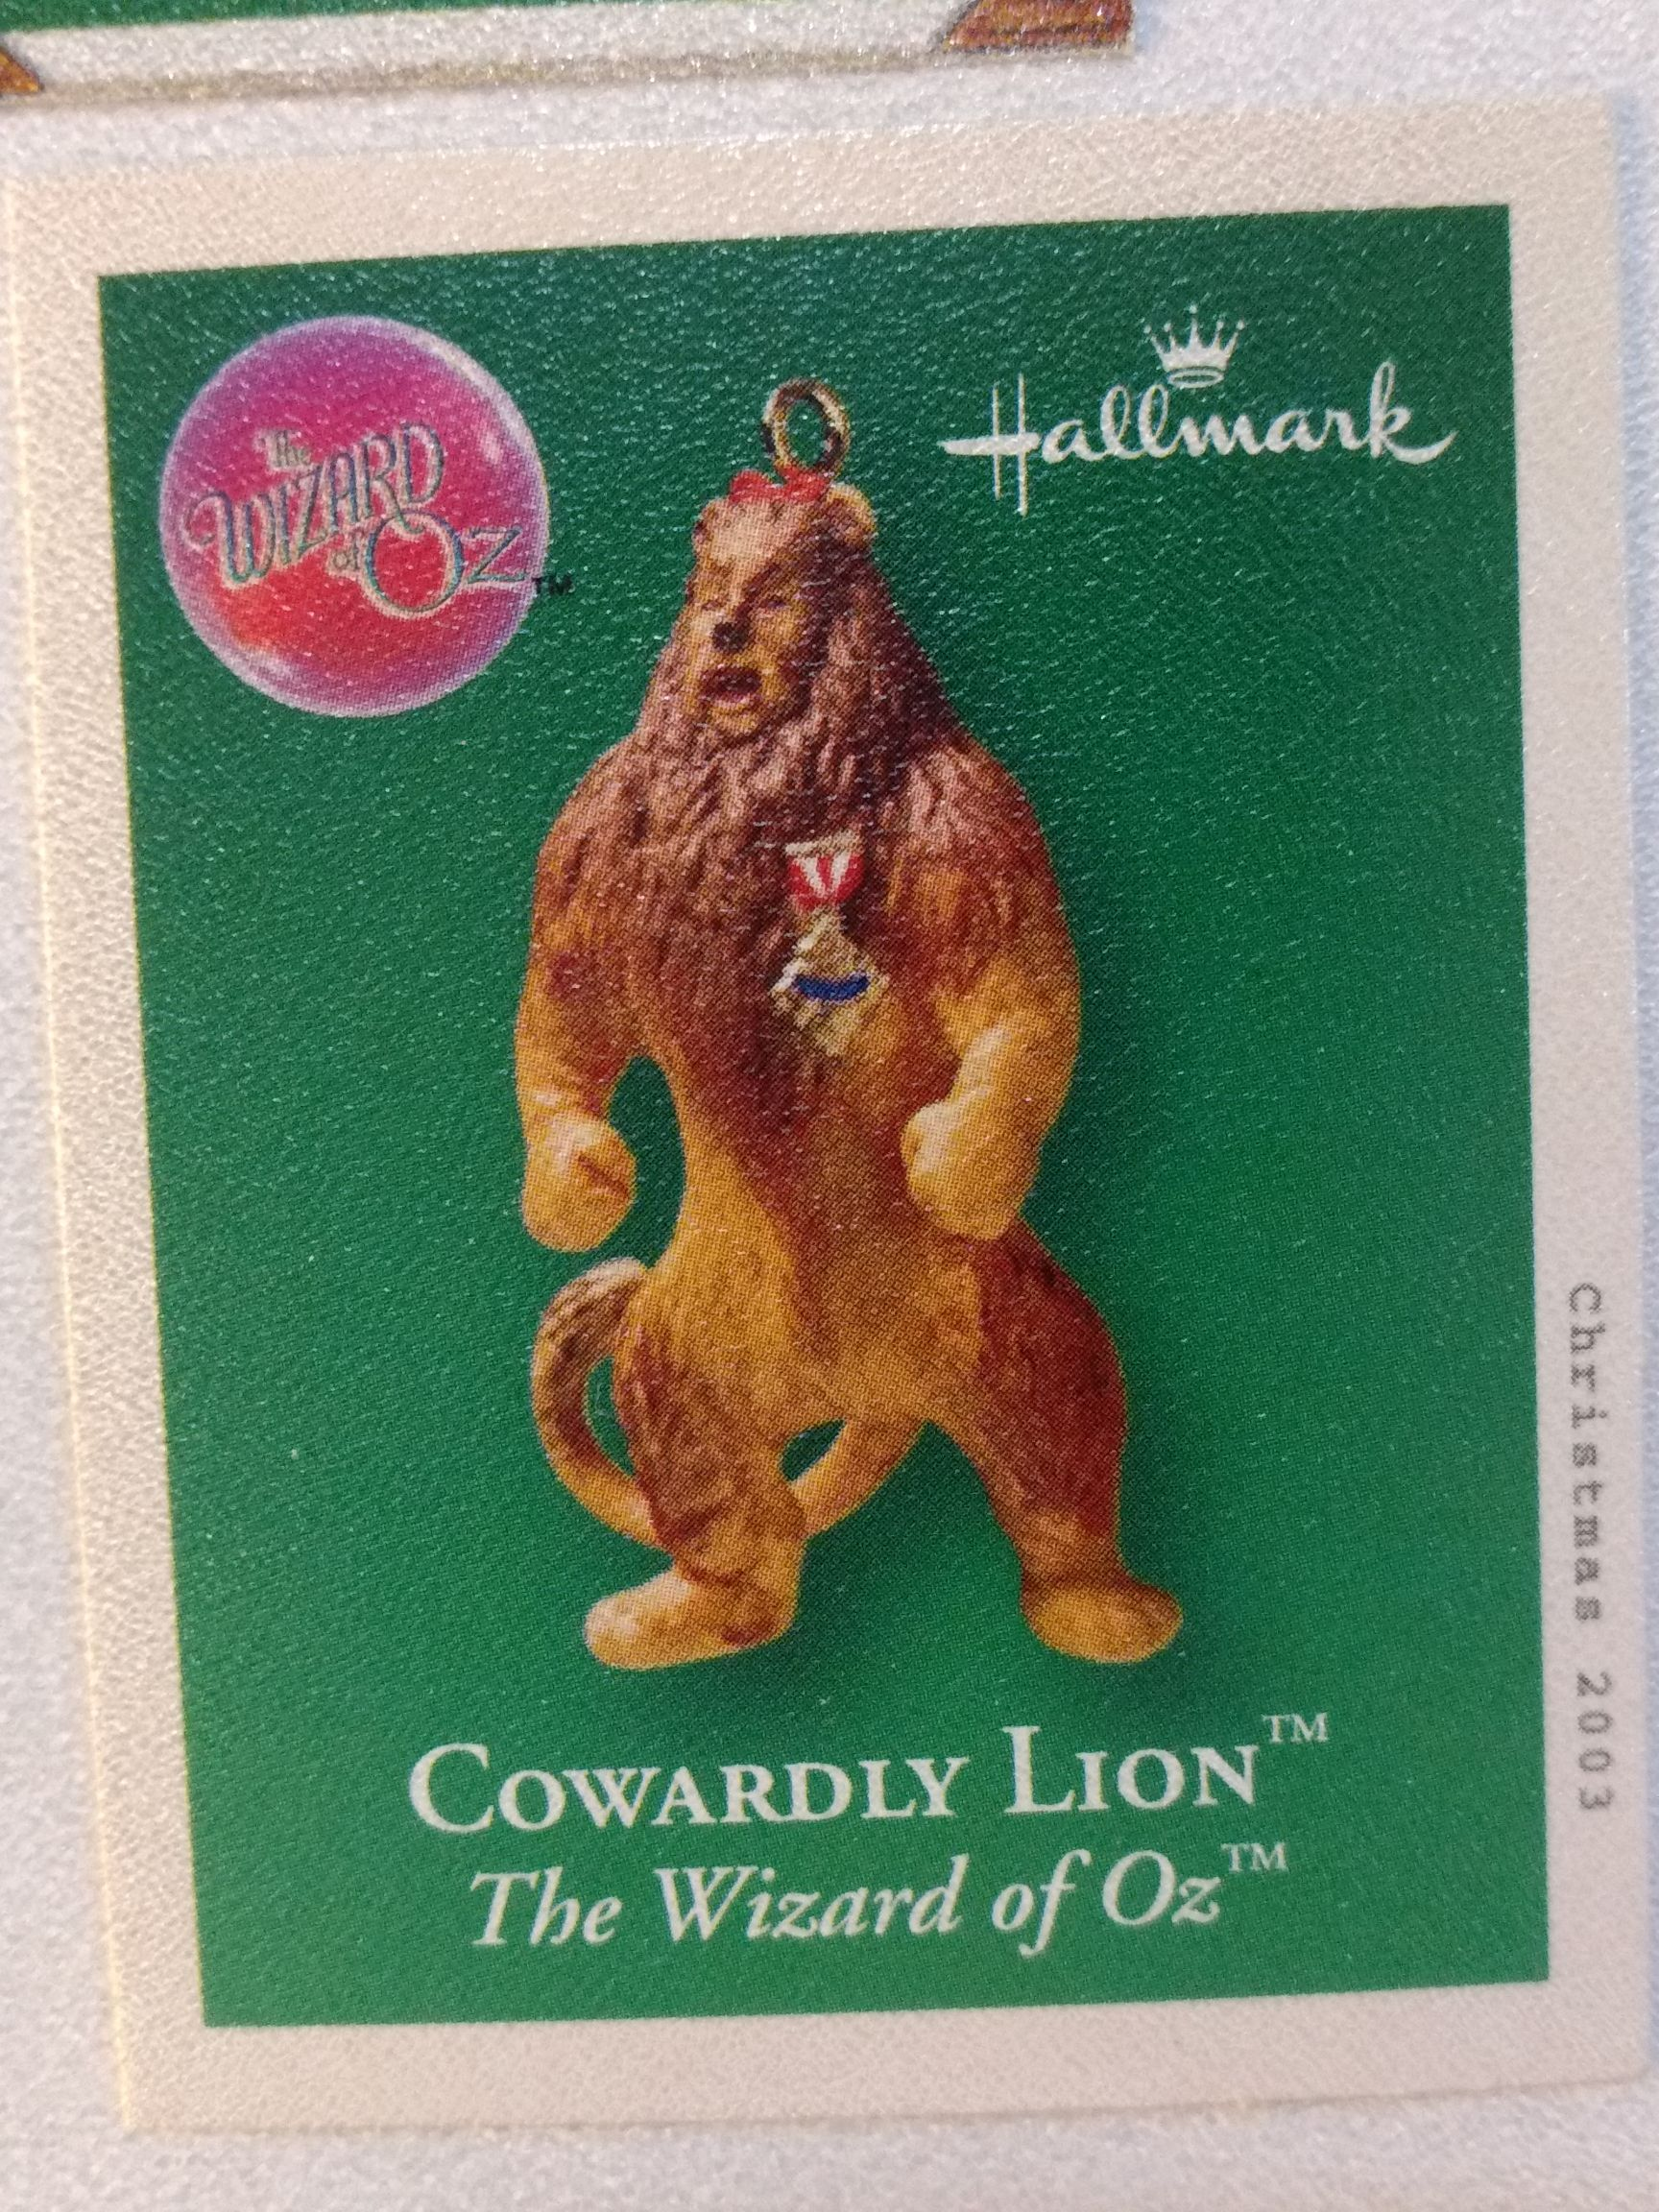 Z - Wizard Of Oz - Cowardly Lion Ornament - Hallmark front image (front cover)